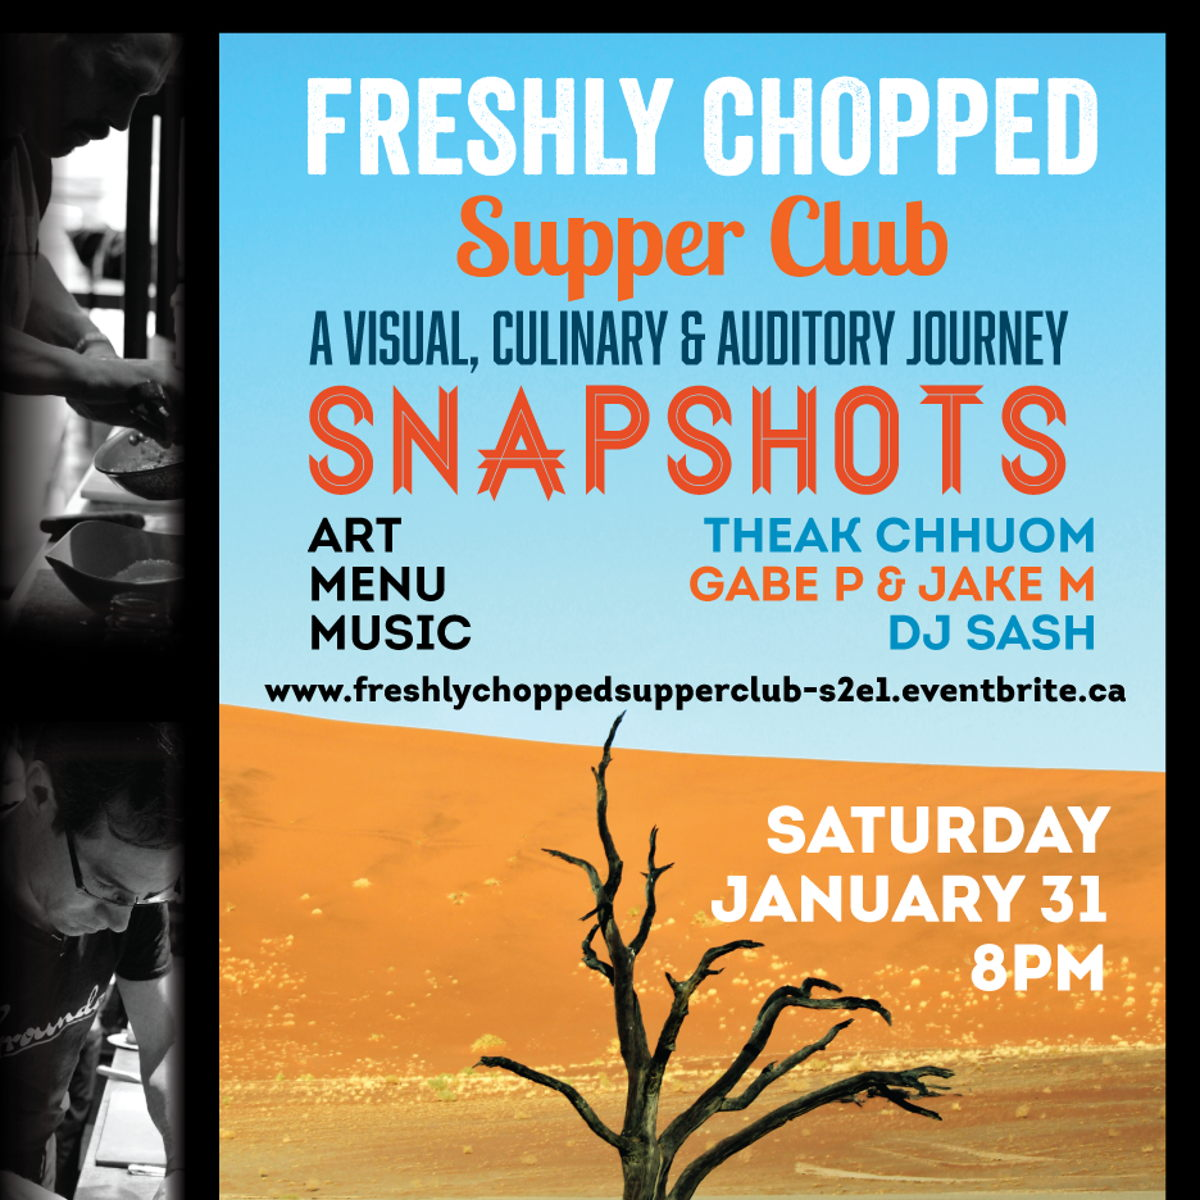 Freshly Chopped Supper Club, First of 2015! - Universe